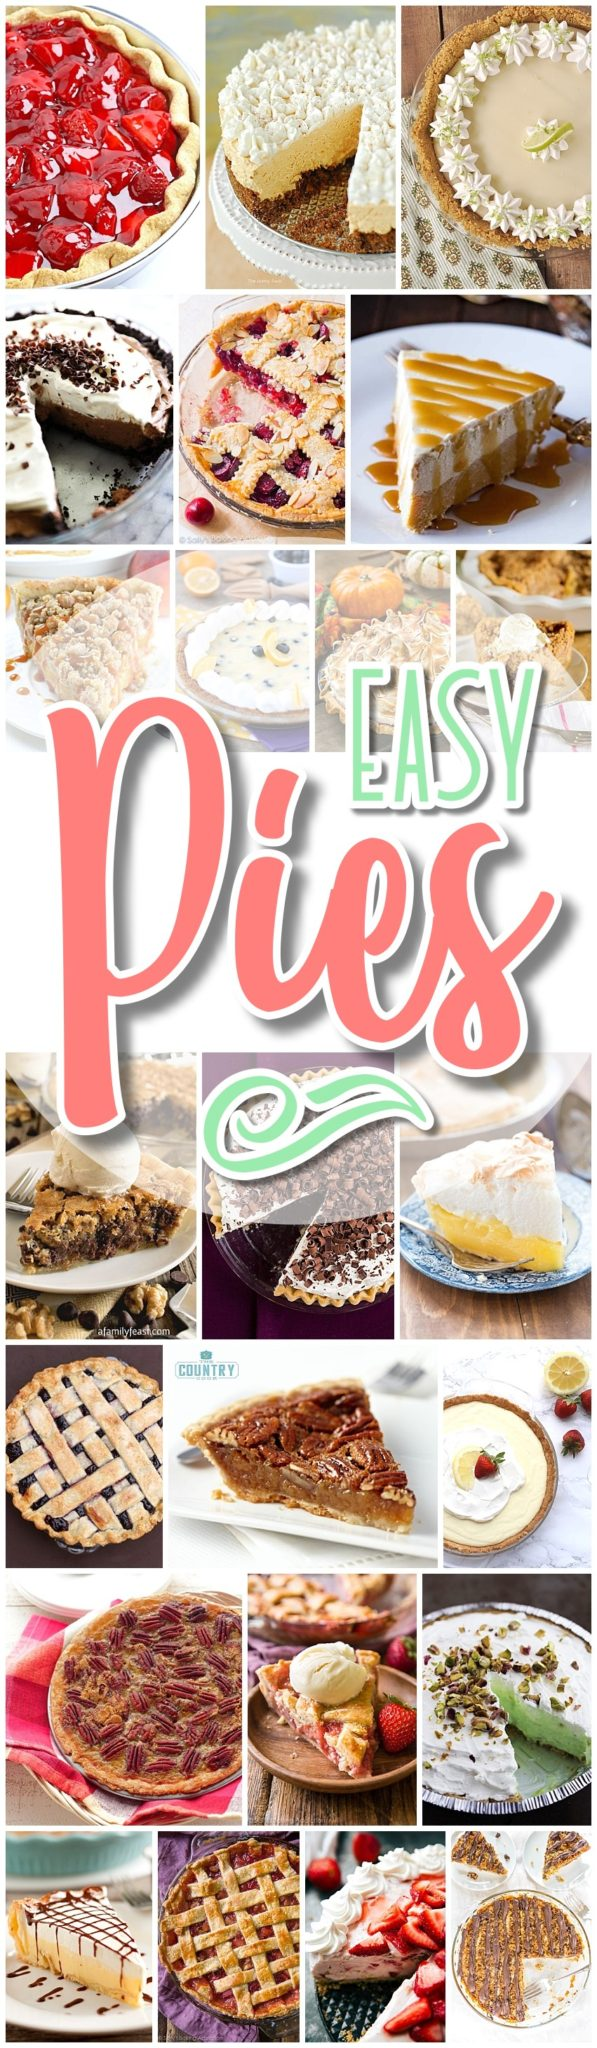 Favorite EASY Pies Recipes - Brunch Dessert No-Bake + Bake Musts Party Treats - Dreaming in DIY - The BEST Easy DIY Mother's Day Gifts and Treats Ideas - Holiday Craft Activity Projects, Free Printables and Favorite Brunch Desserts Recipes for Moms and Grandmas